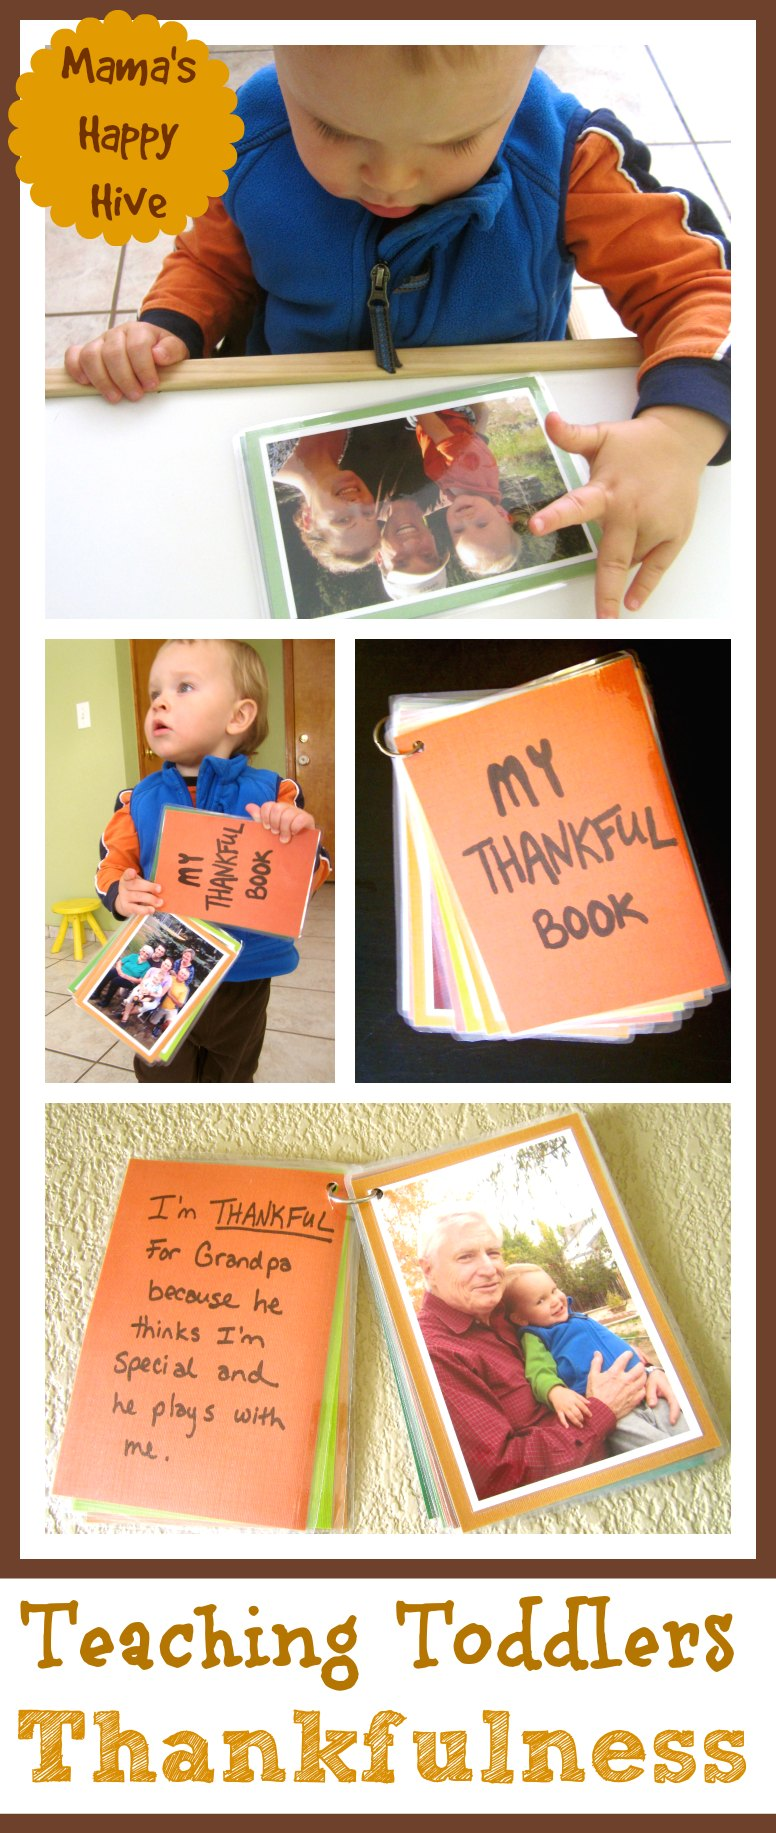 Teaching Toddlers Thankfulness - www.mamashappyhive.com